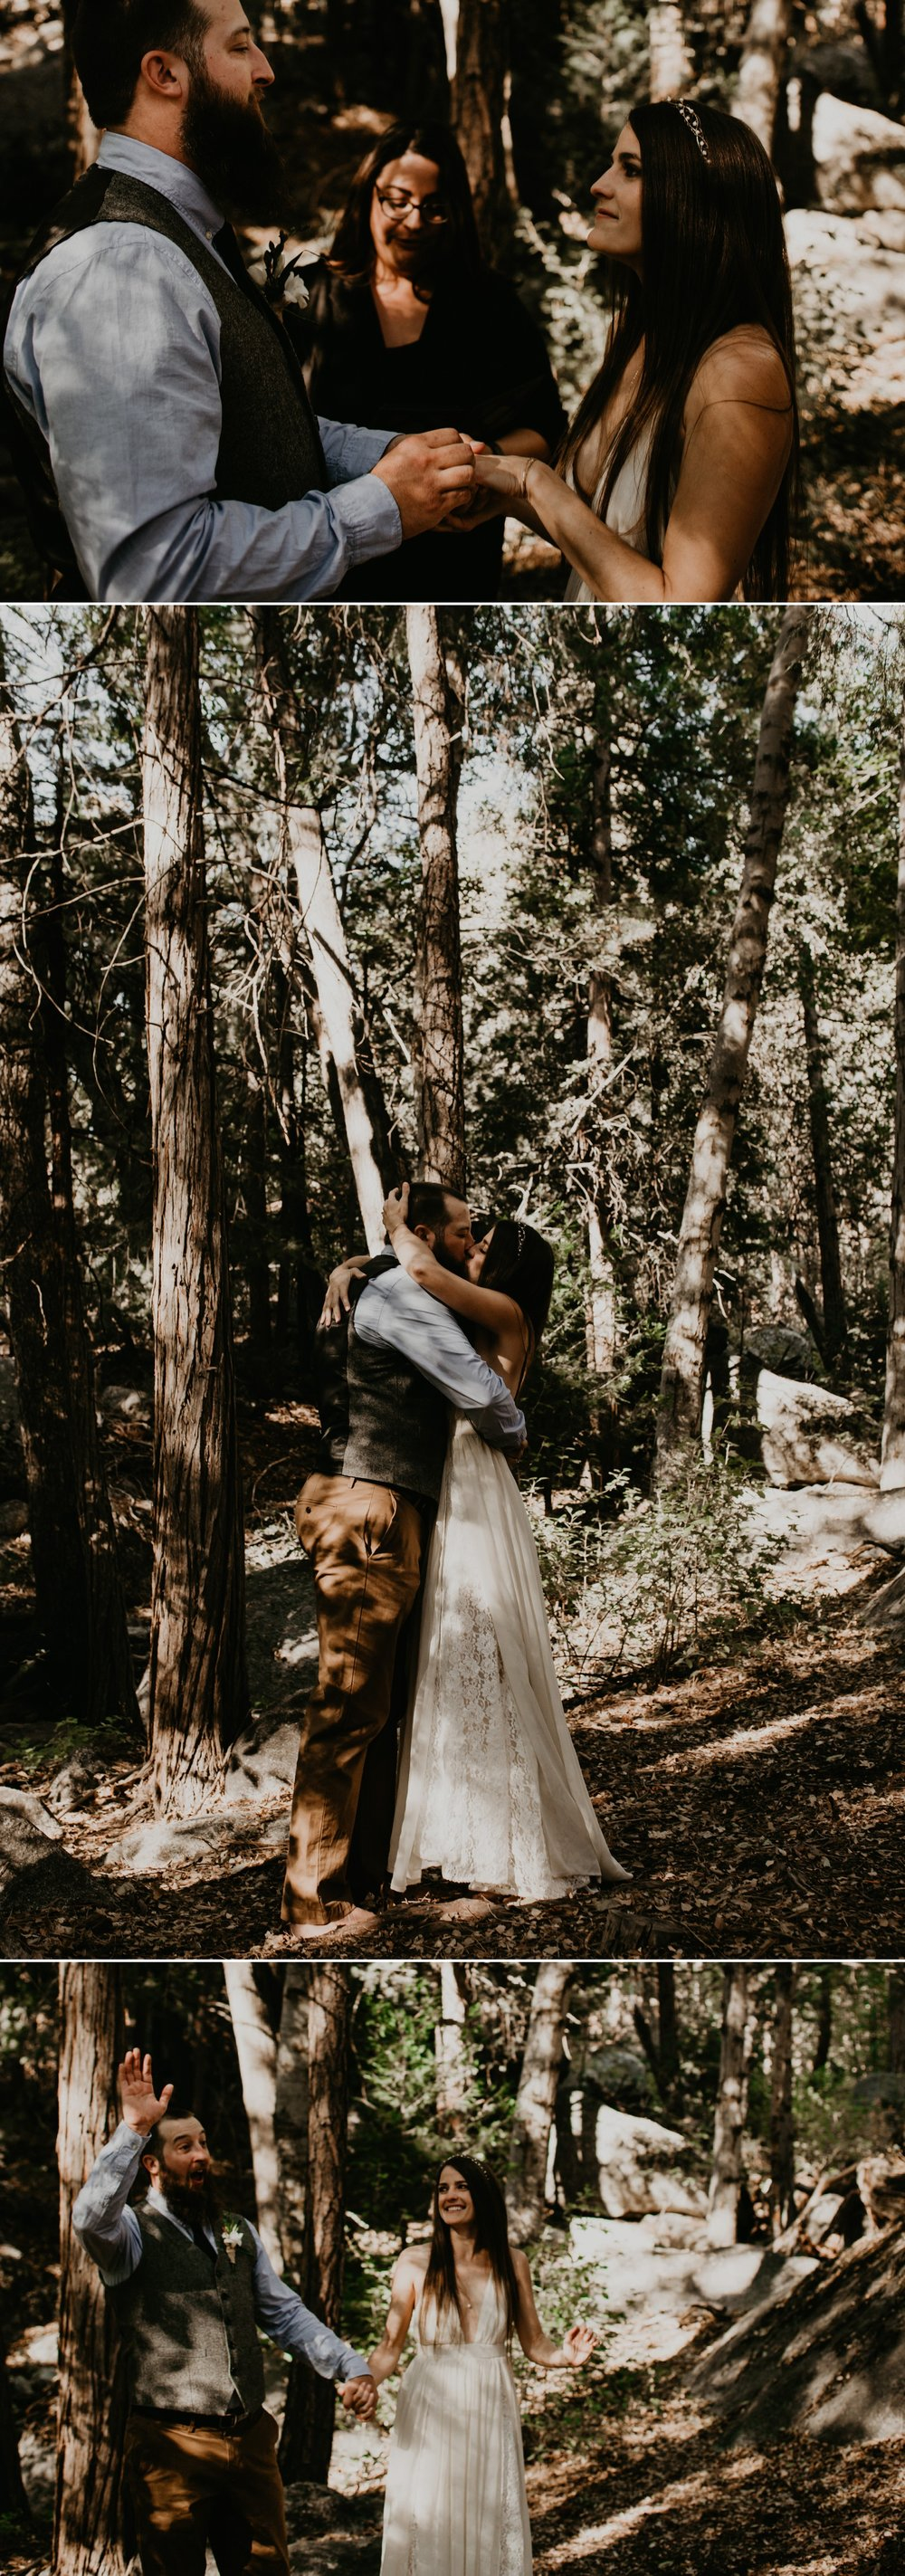 wedding-ceremony-cabin-idyllwild.jpg